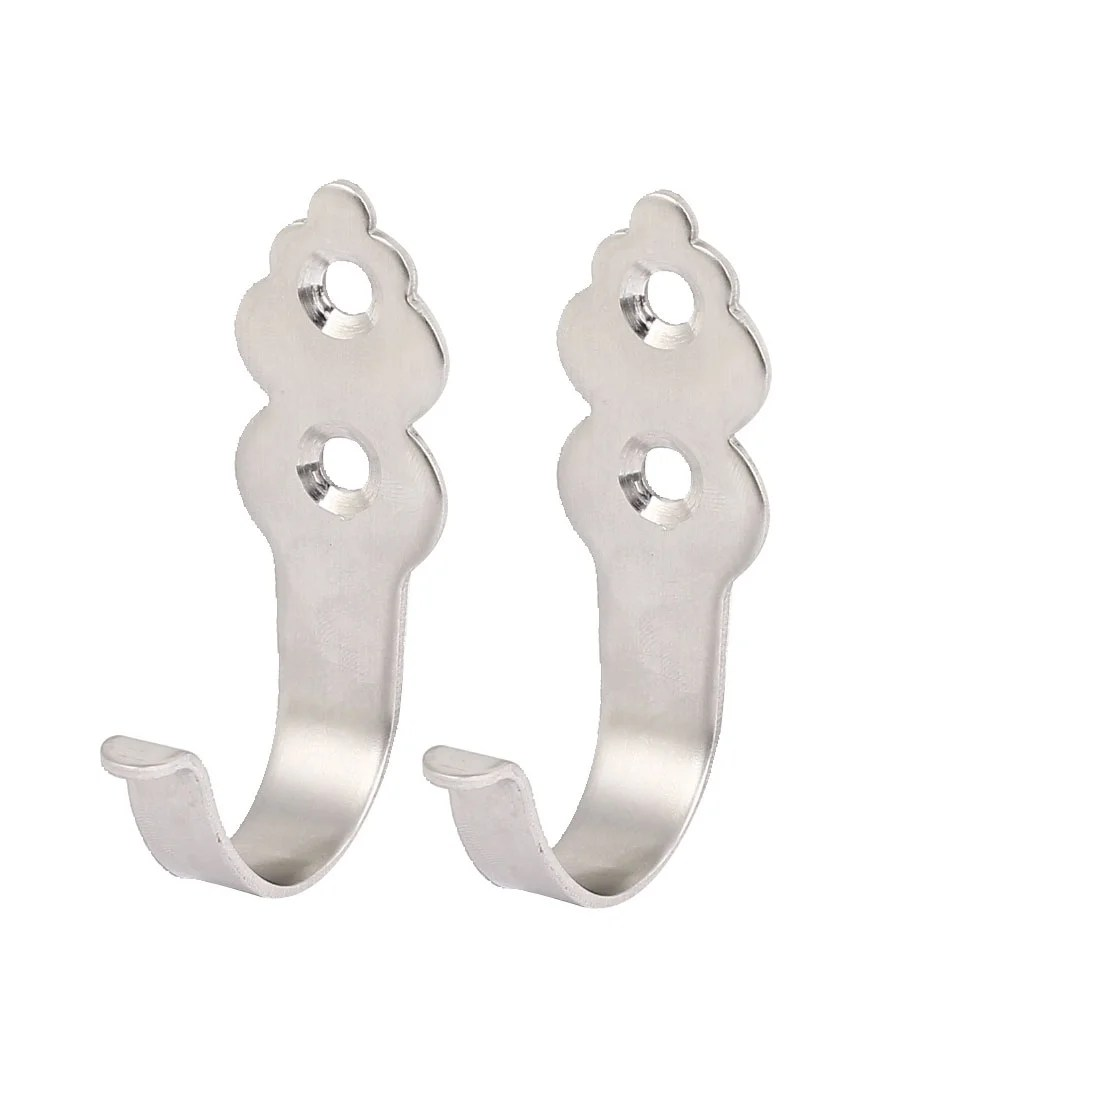 Clothes Hooks 2pcs Modern Wall Hooks Strong Hold Stainless Steel Clothes Hooks Hanger